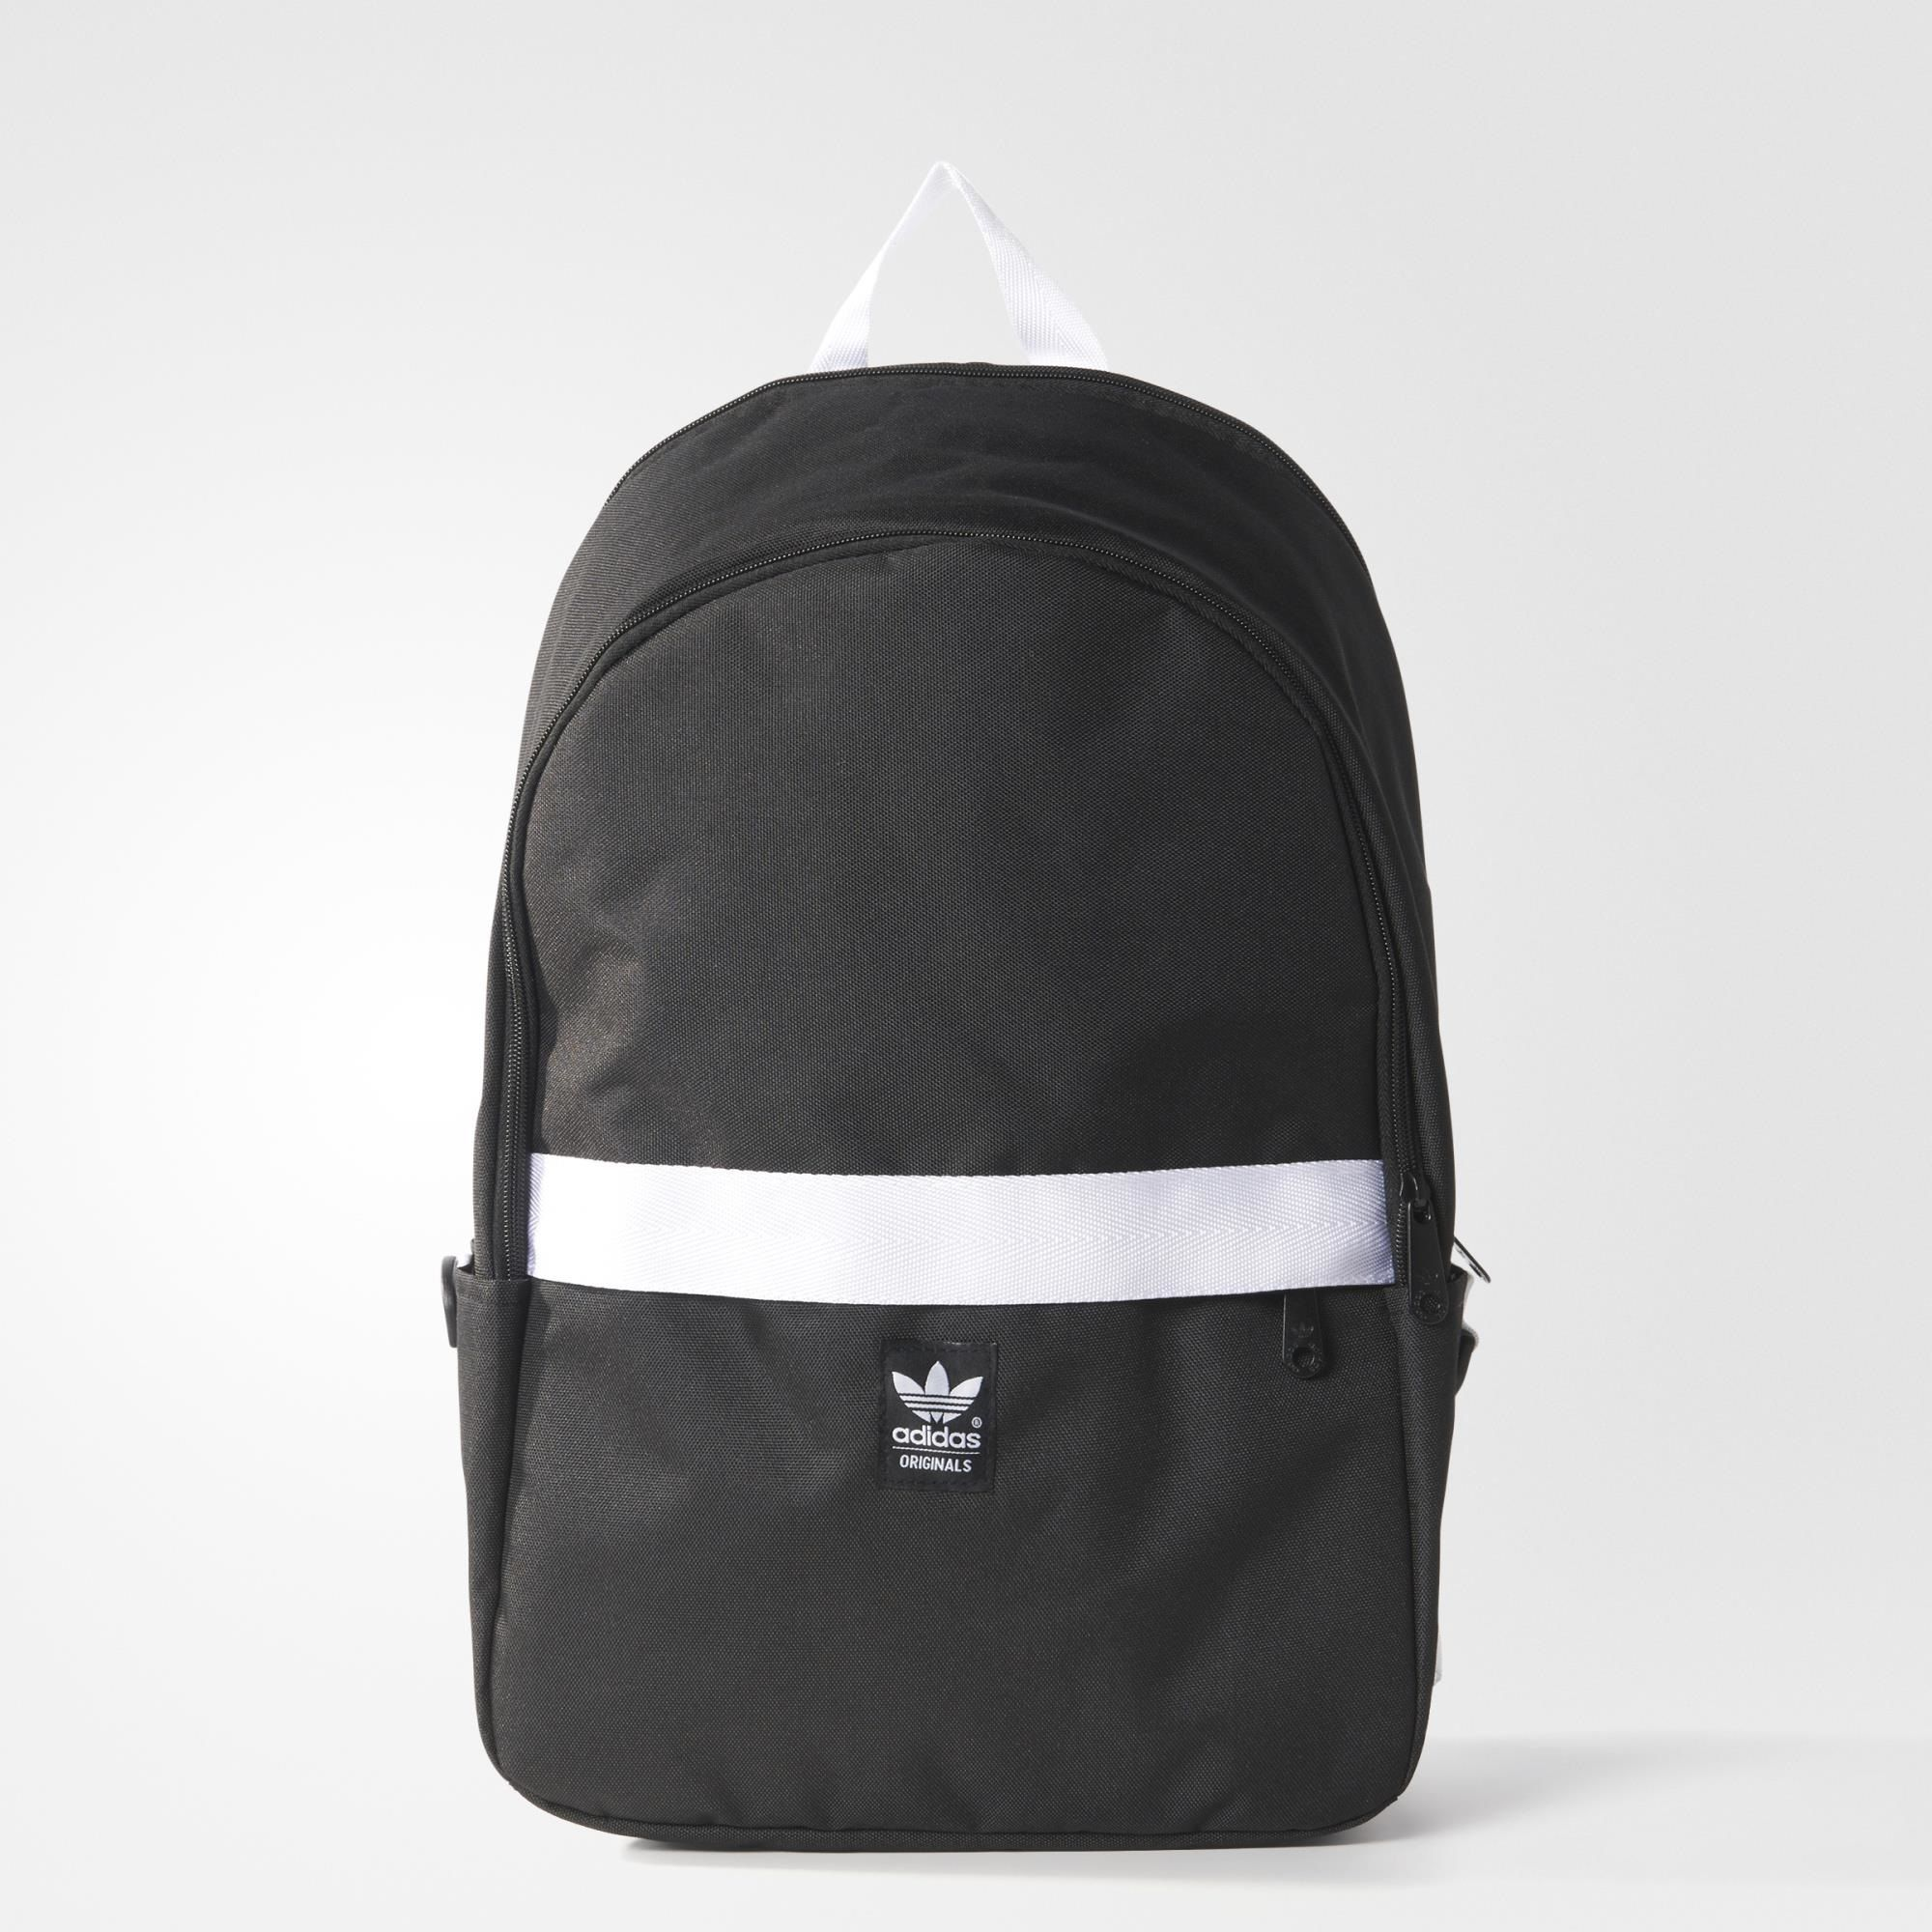 adidas Essential Backpack - Black   adidas US   bags   Pinterest ... b740c3d42e